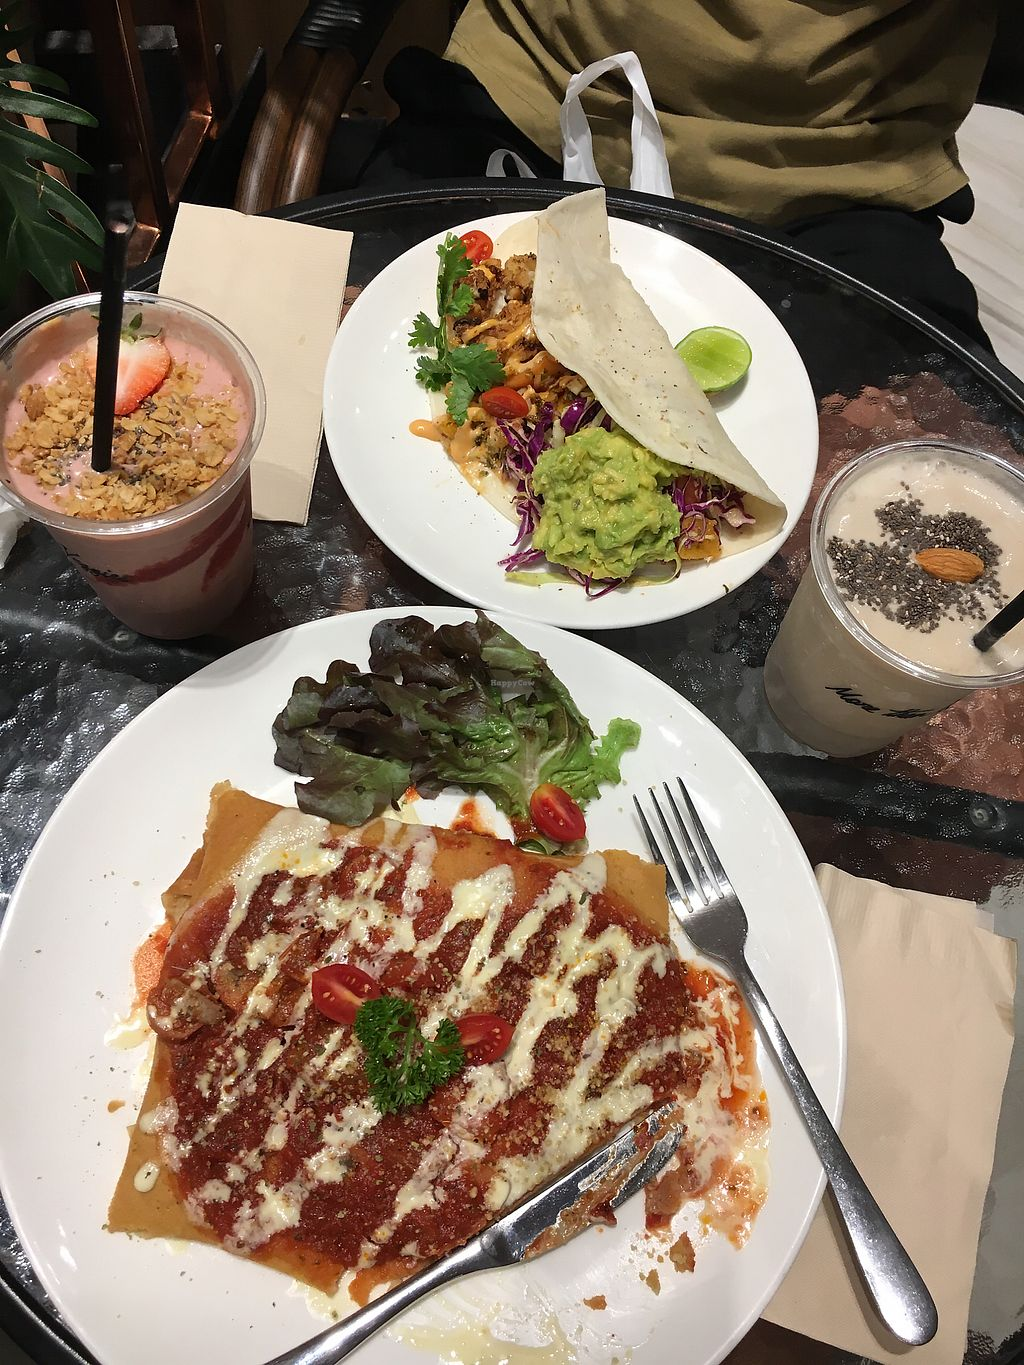 """Photo of Veganerie - Siam Paragon  by <a href=""""/members/profile/Tisa93"""">Tisa93</a> <br/>Best meal ever  <br/> April 12, 2018  - <a href='/contact/abuse/image/83823/384592'>Report</a>"""